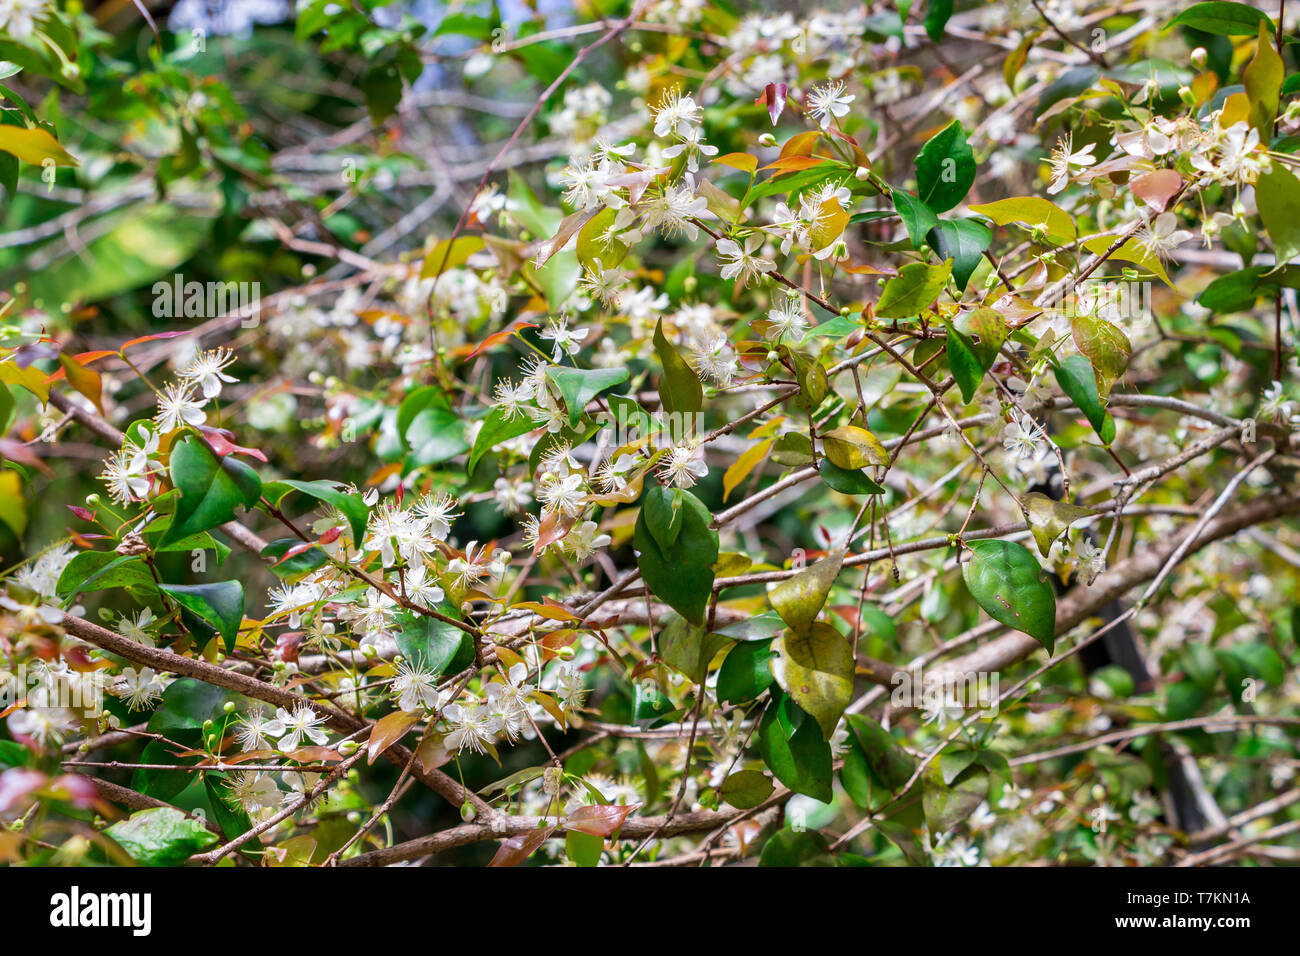 Suriname cherry (Eugenia uniflora) white flowers - Long Key Natural Area, Davie, Florida, USA - Stock Image